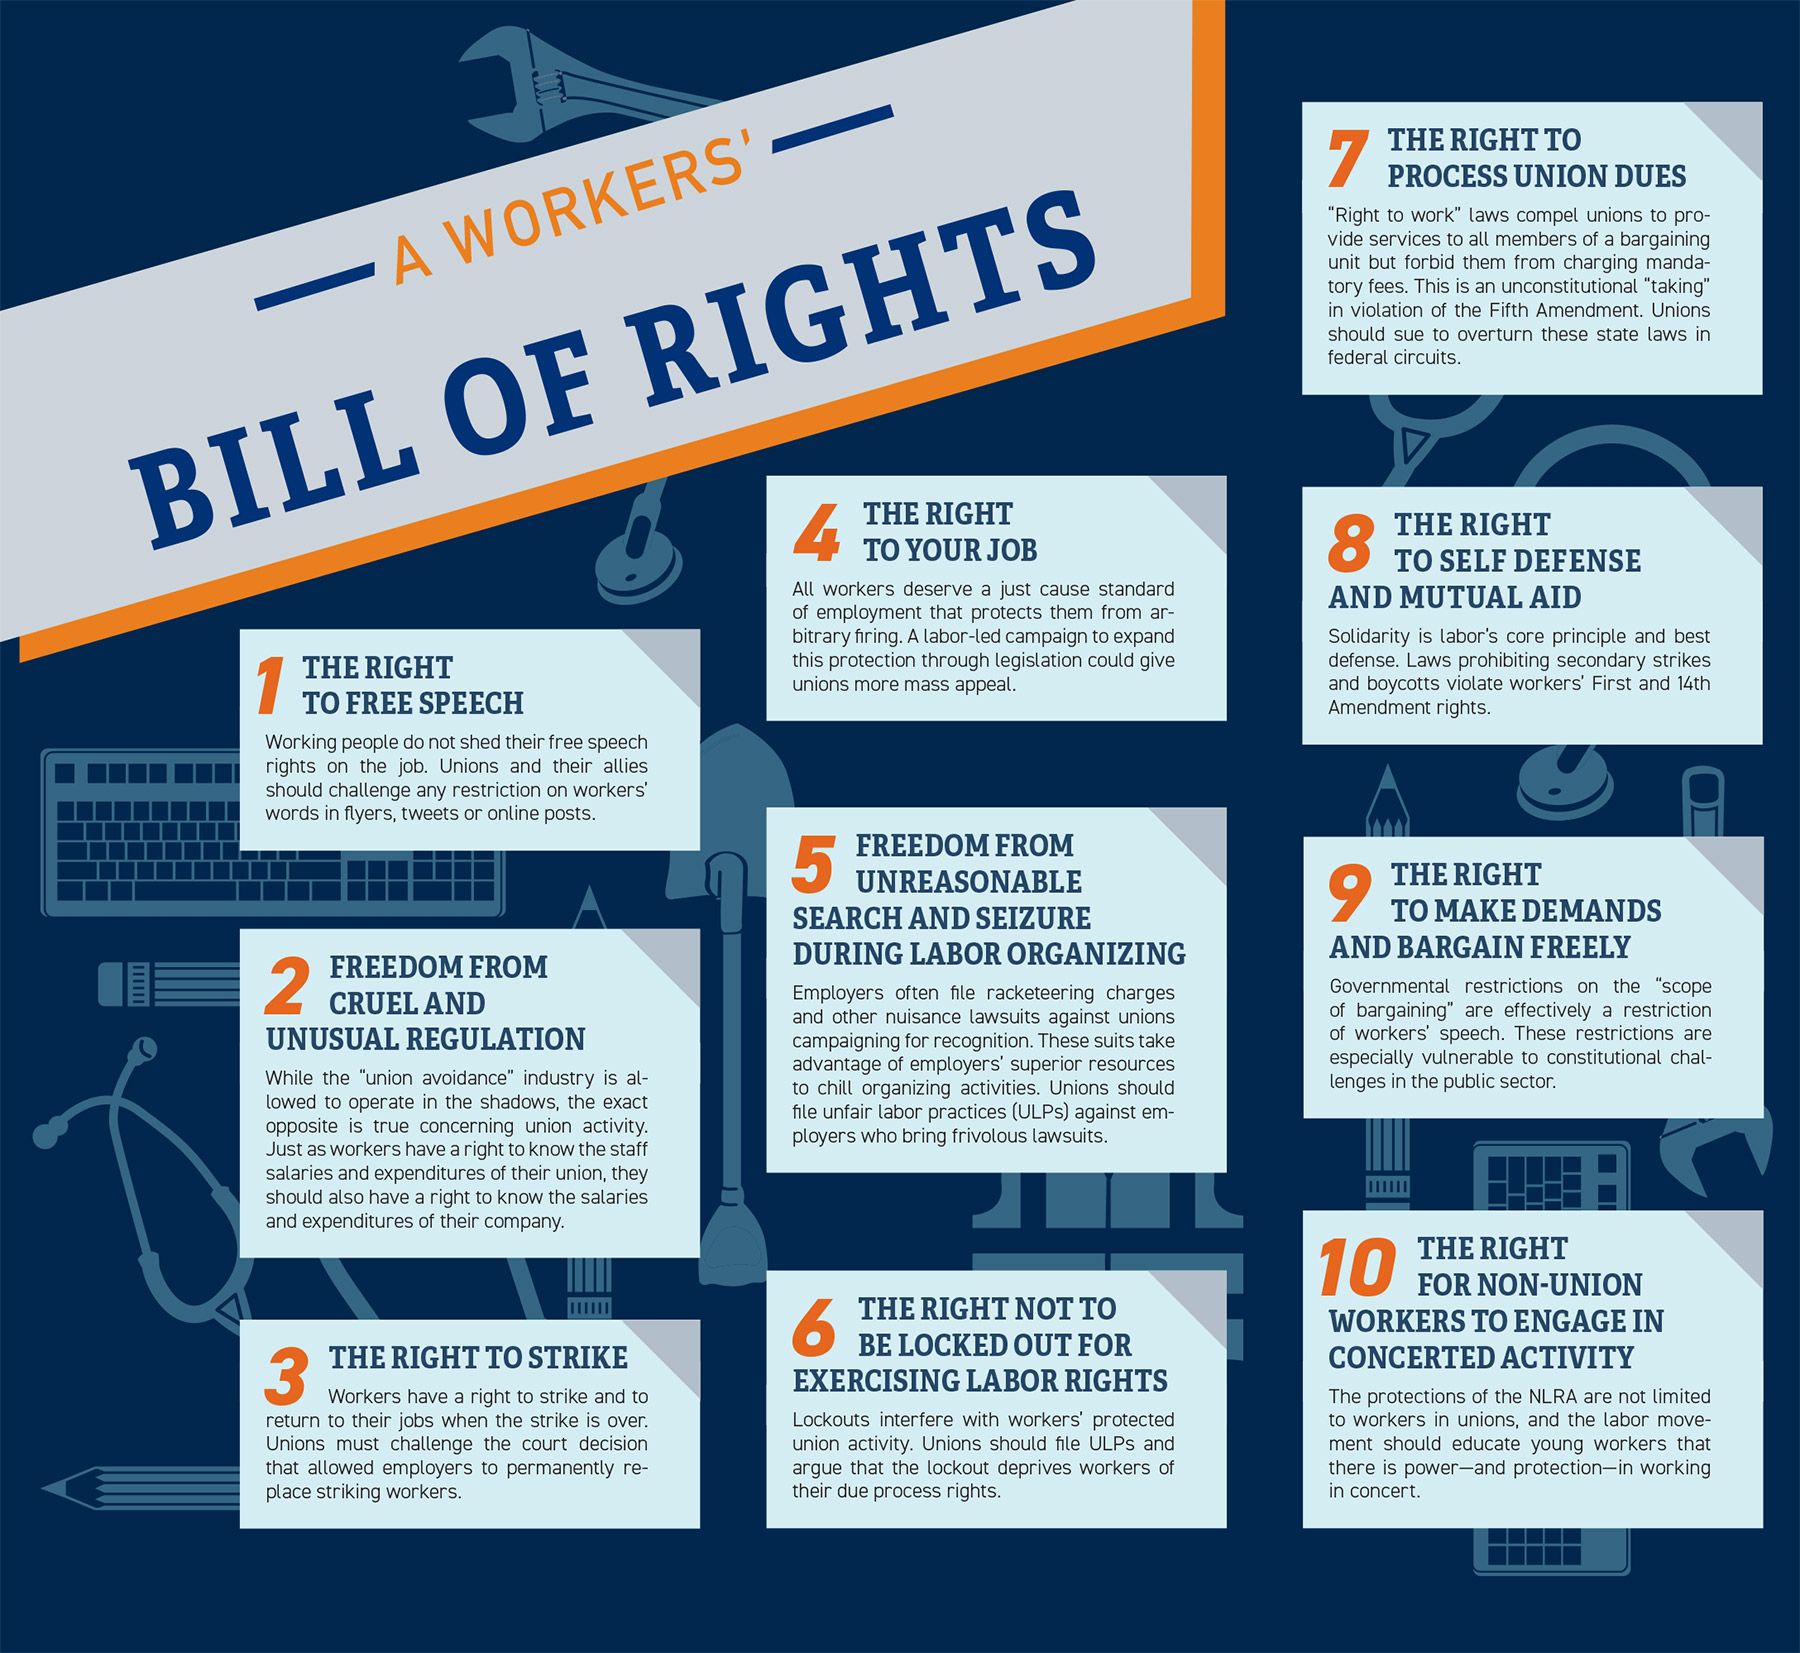 A New Bill of Rights for Workers: 10 Demands the Labor